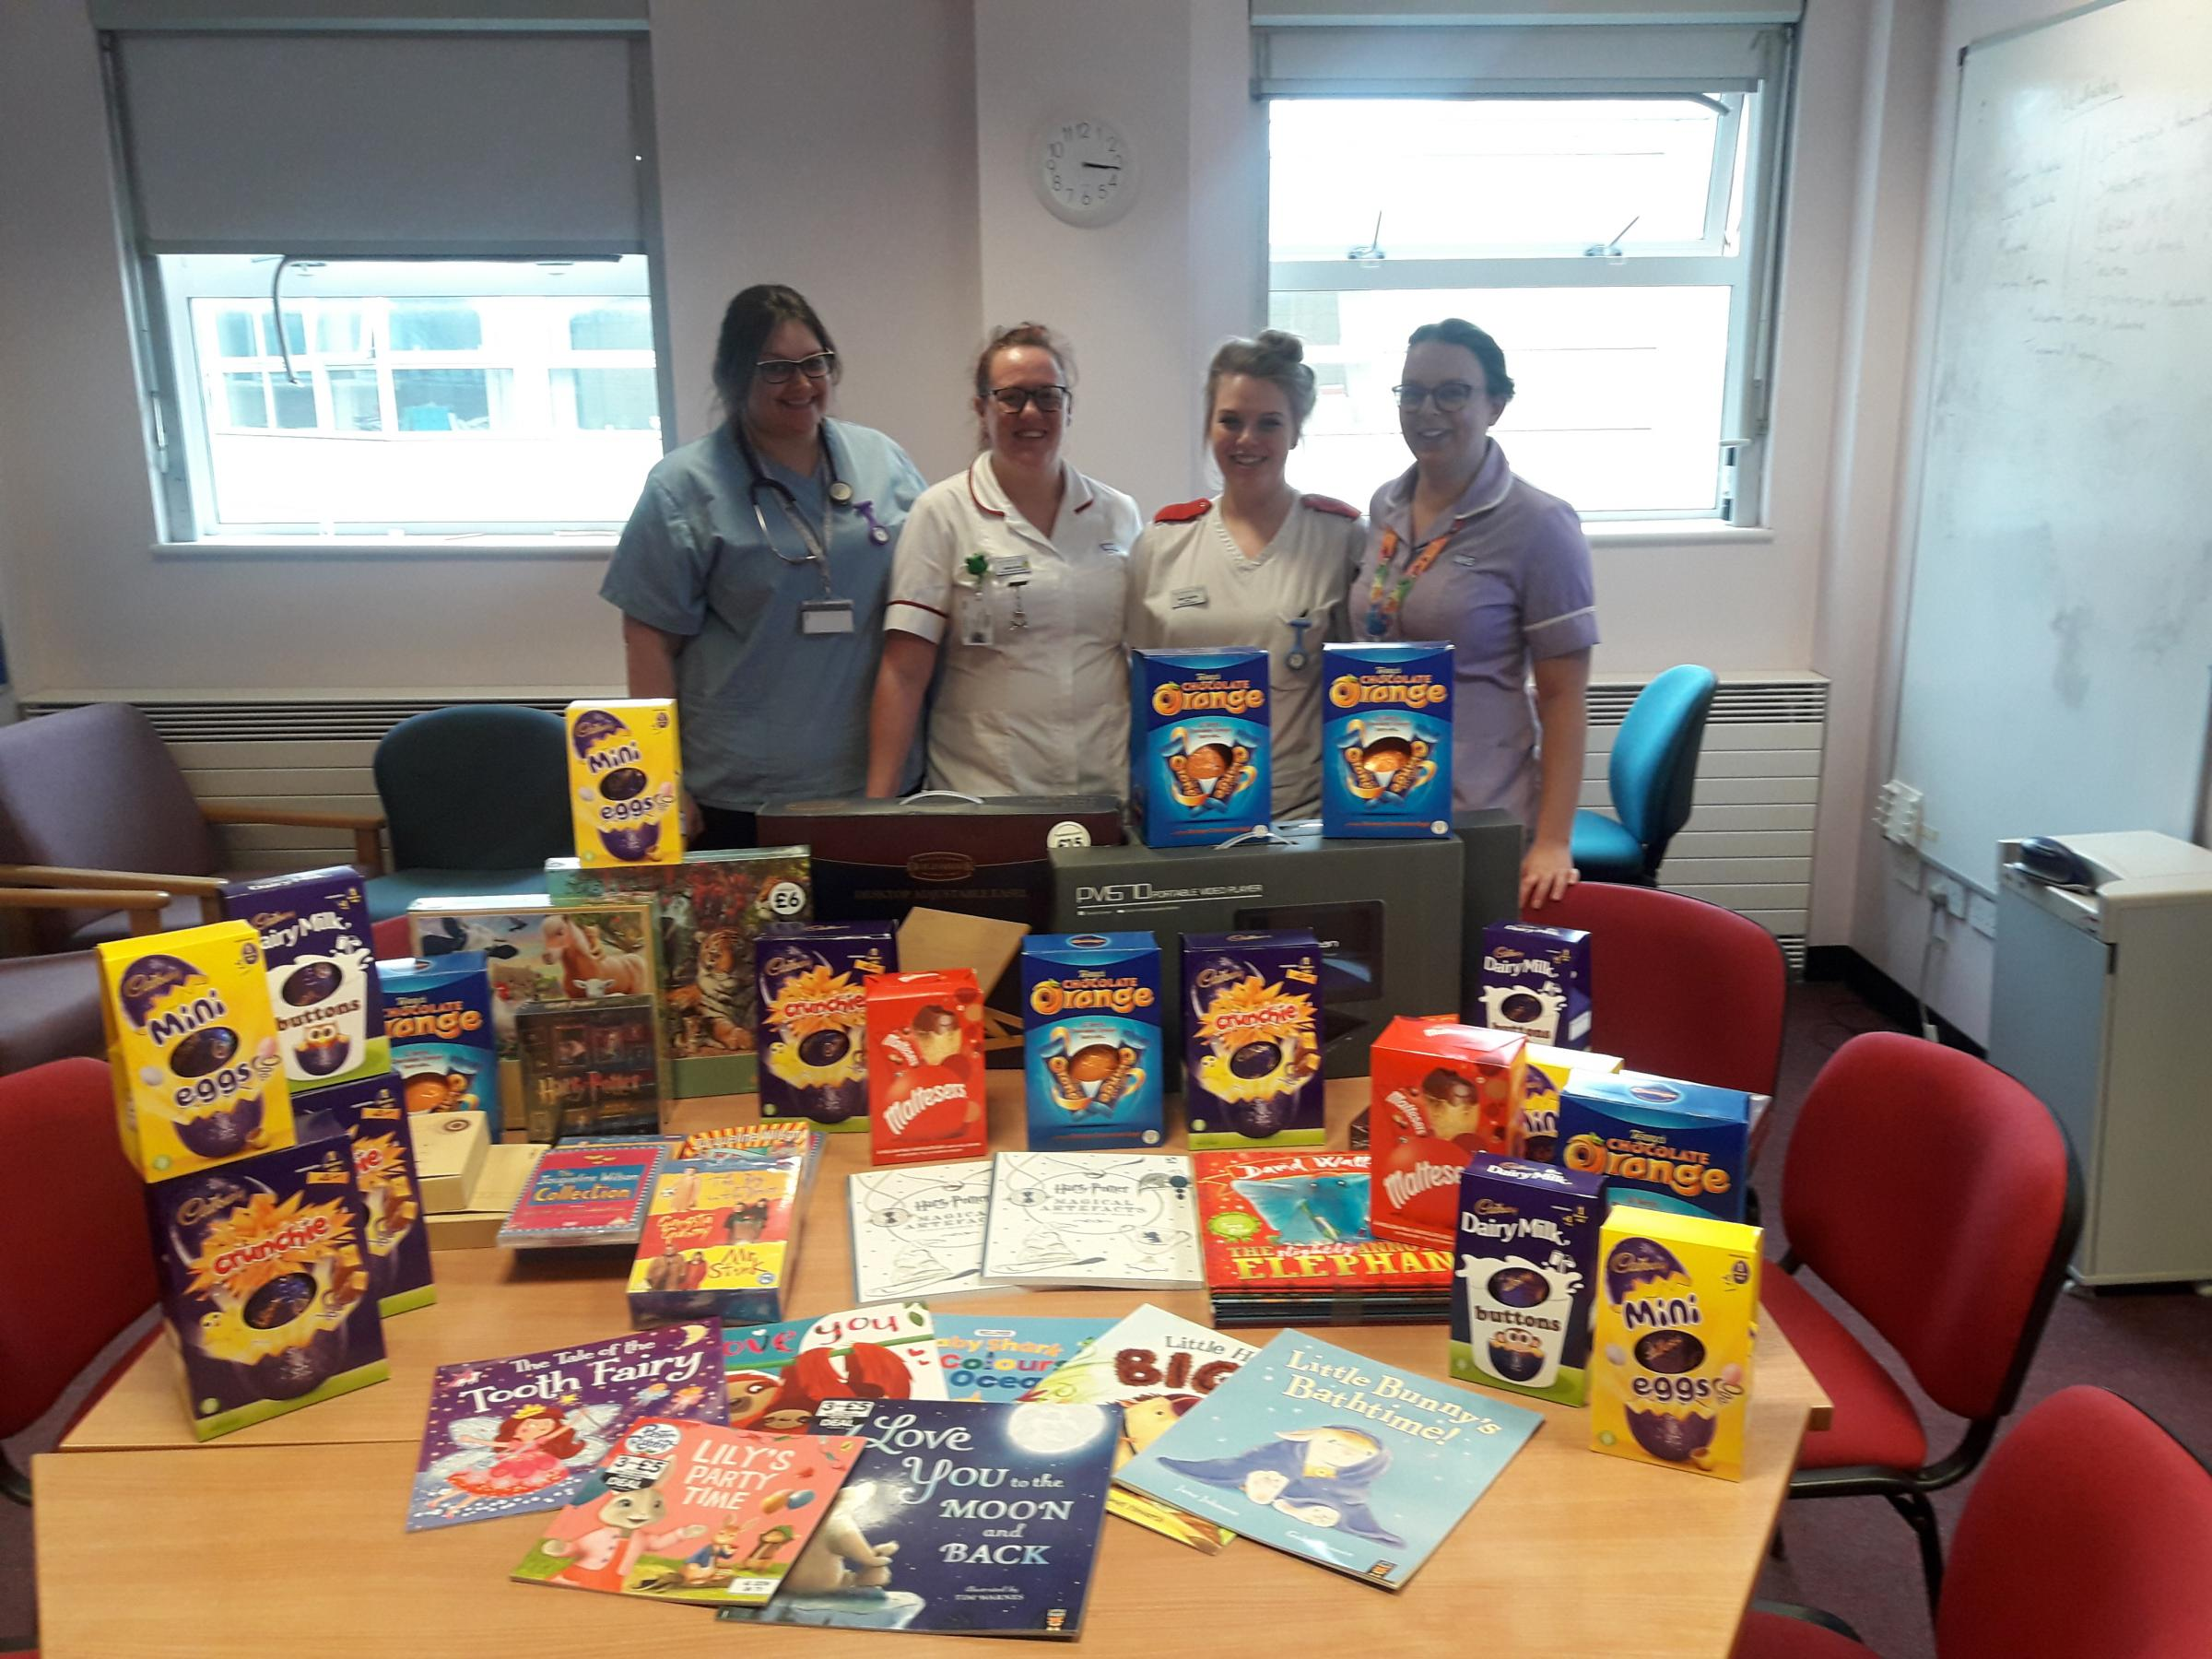 Customers at a pub in Wokingham have been busy donating chocolate Easter eggs for ill children at the Royal Berkshire Hospital